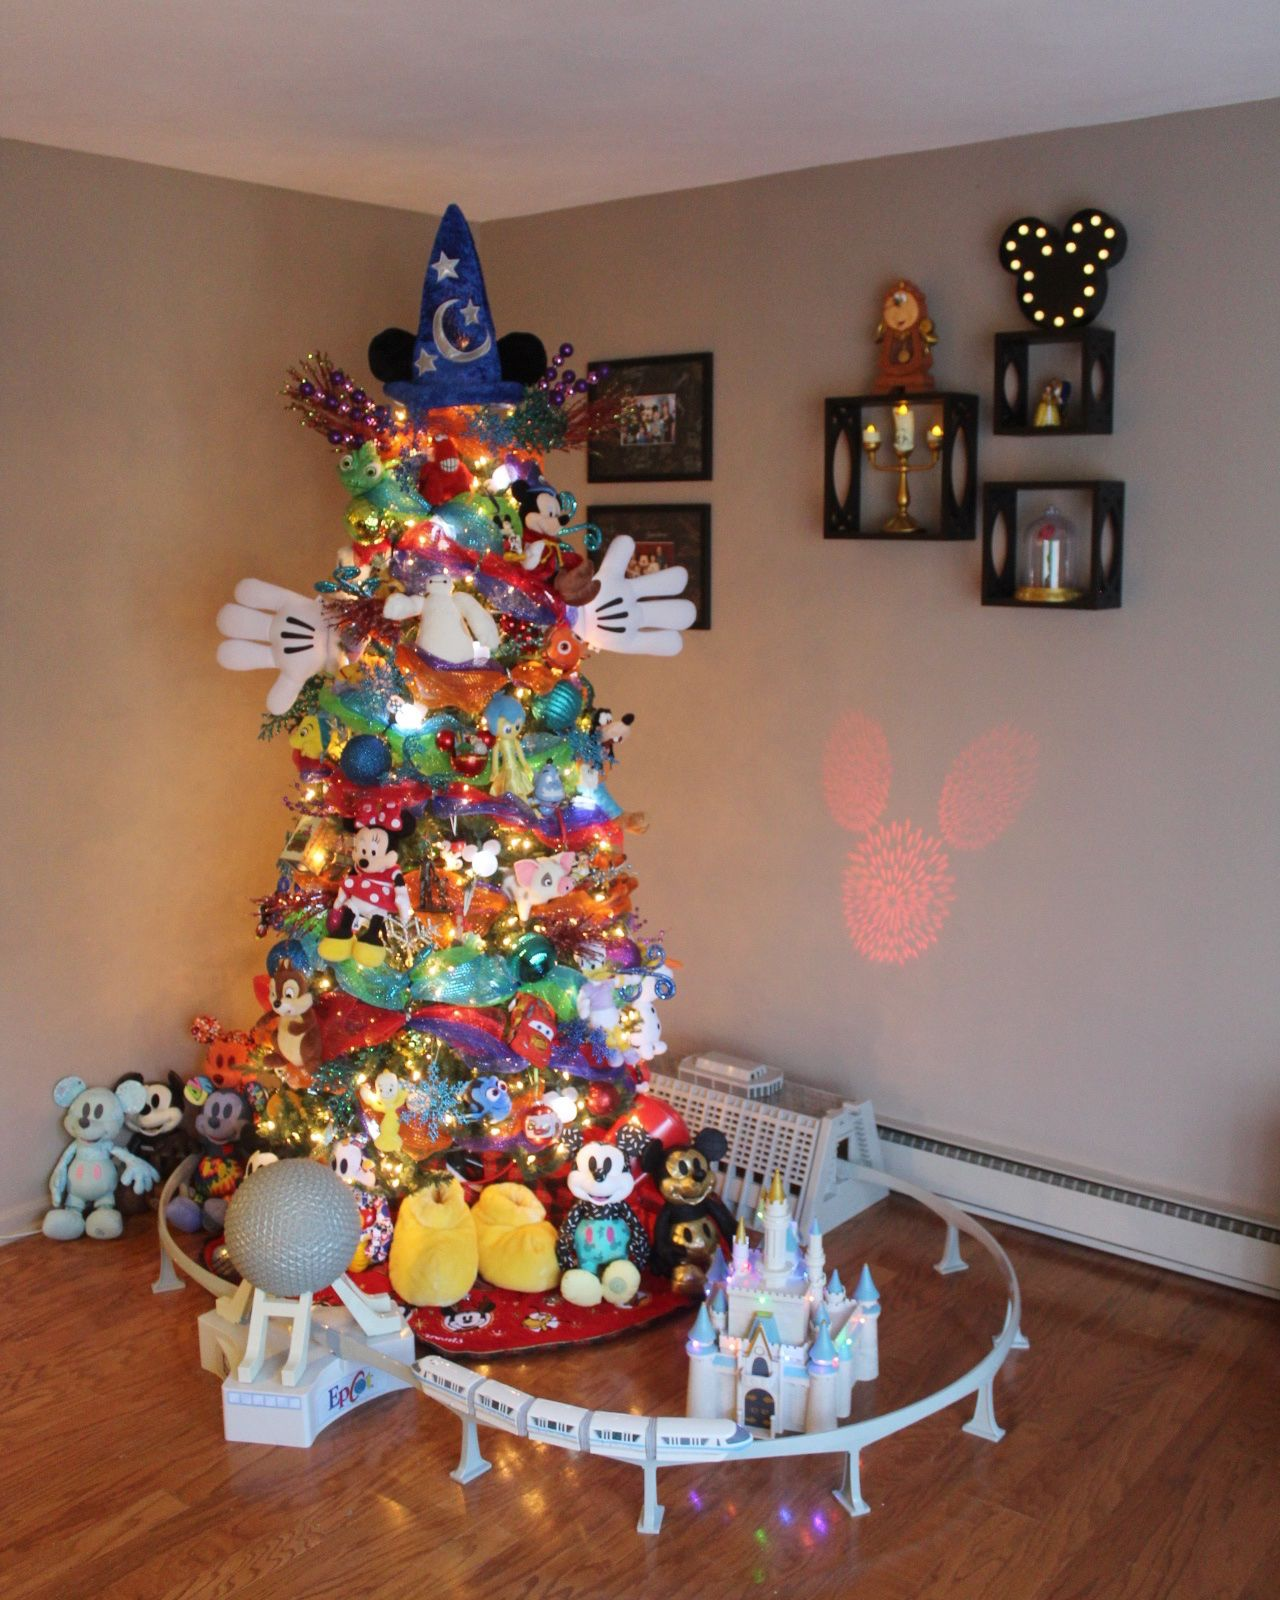 Disney Christmas Tree.Our Annual Disney Themed Tree Complete With Monorail And